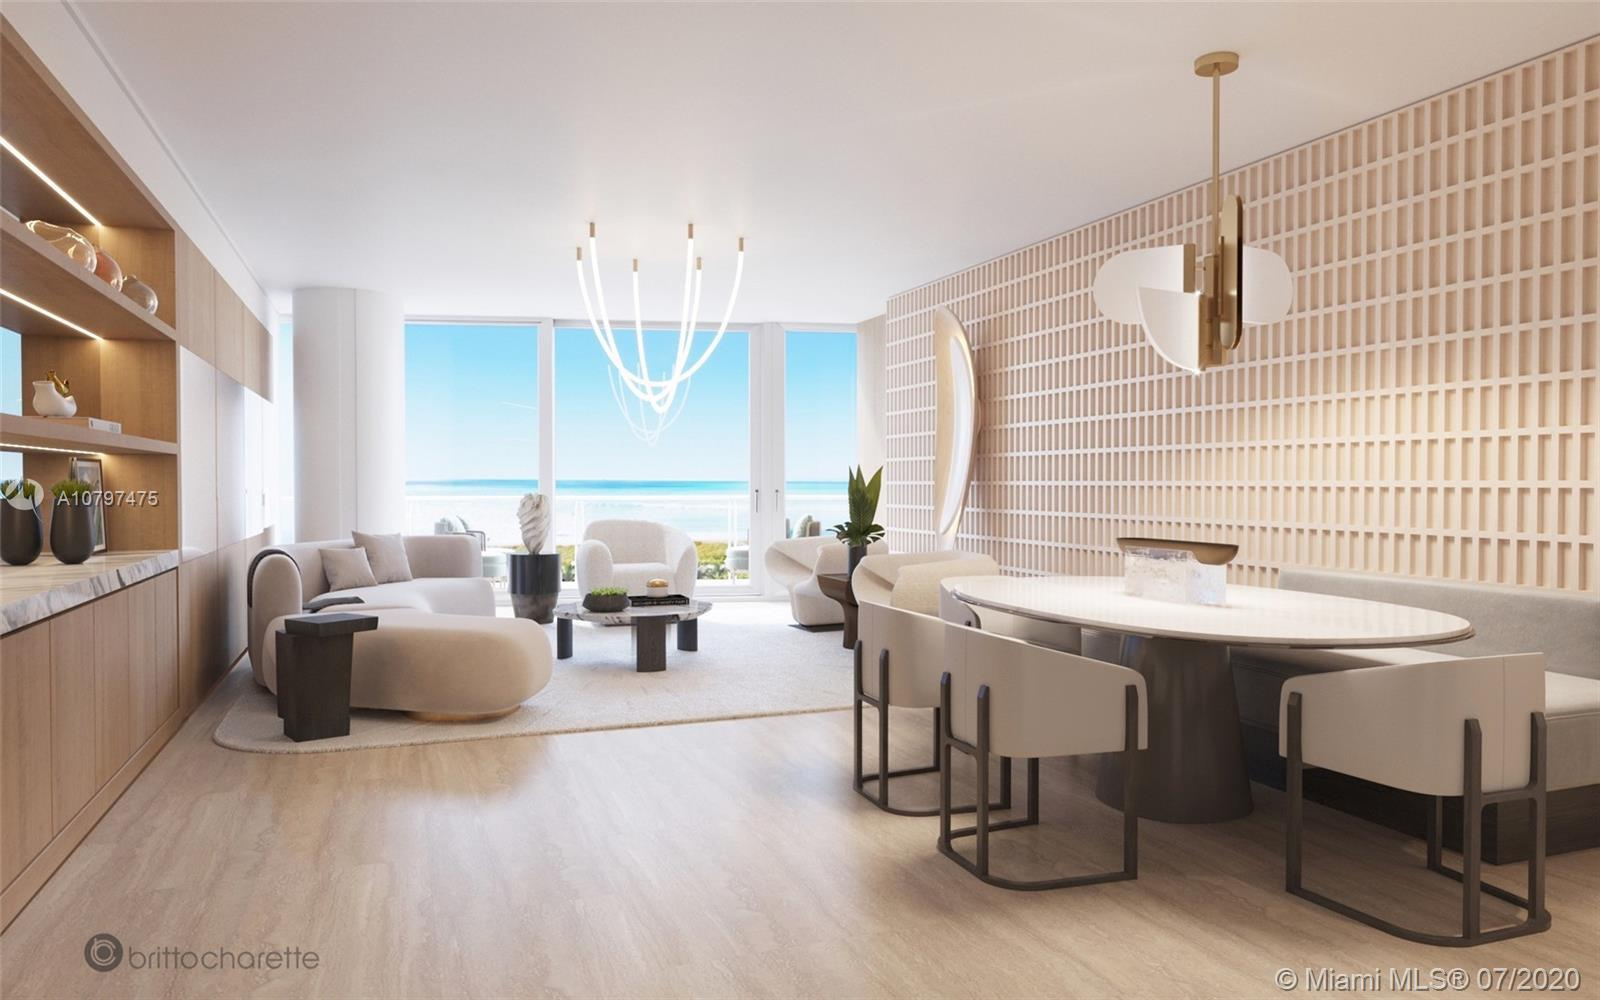 Enjoy Legendary Living at the The Surf Club Four Seasons in this stunning oceanfront residence. Priv